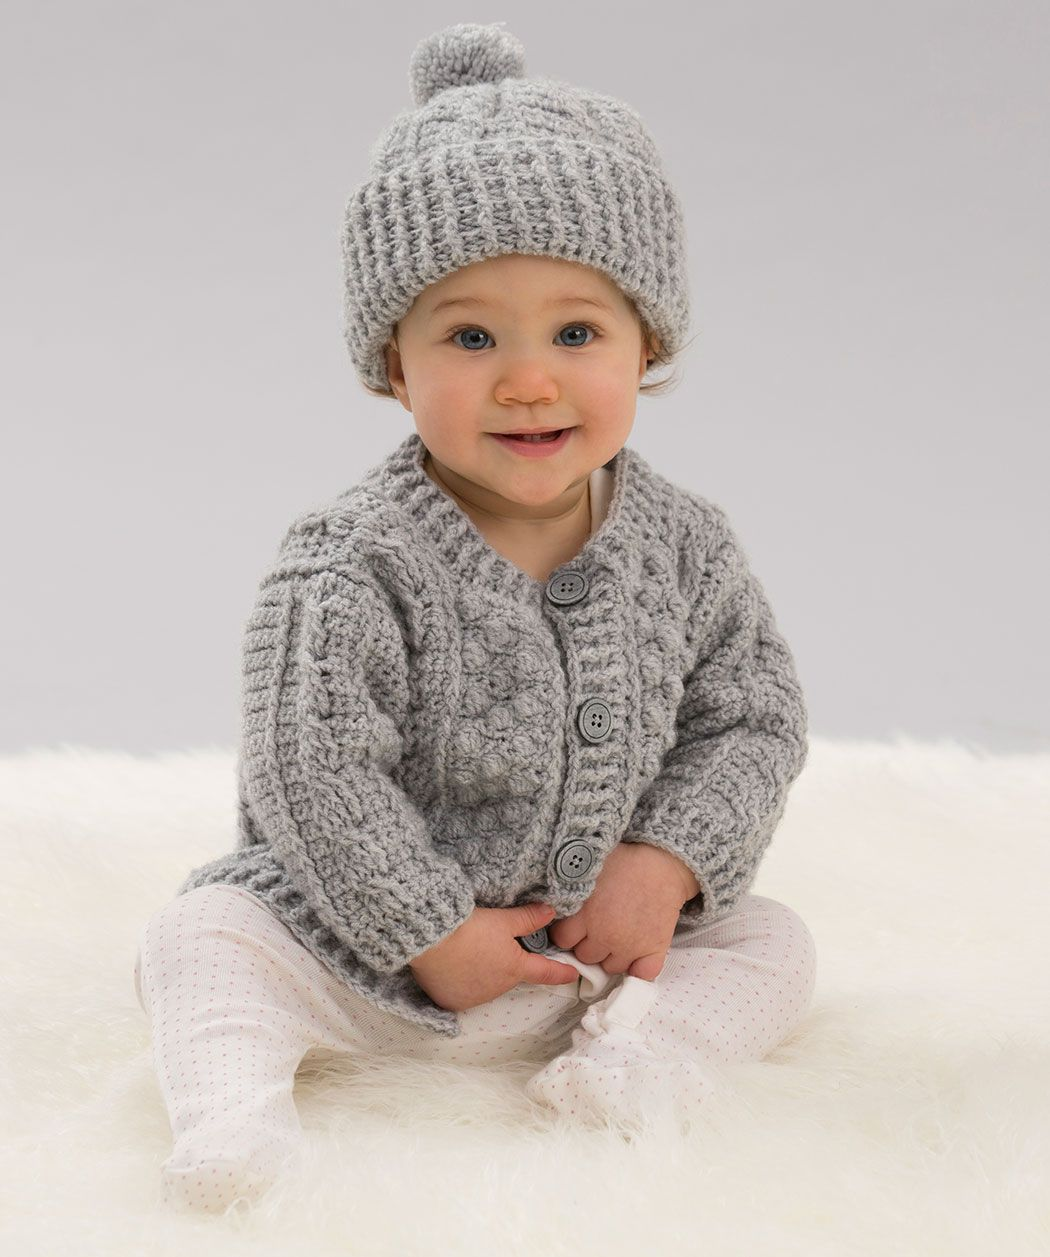 Httpredheartbookscozy neutrals for babyutmsource explore kids crochet hats free pattern and more bankloansurffo Choice Image